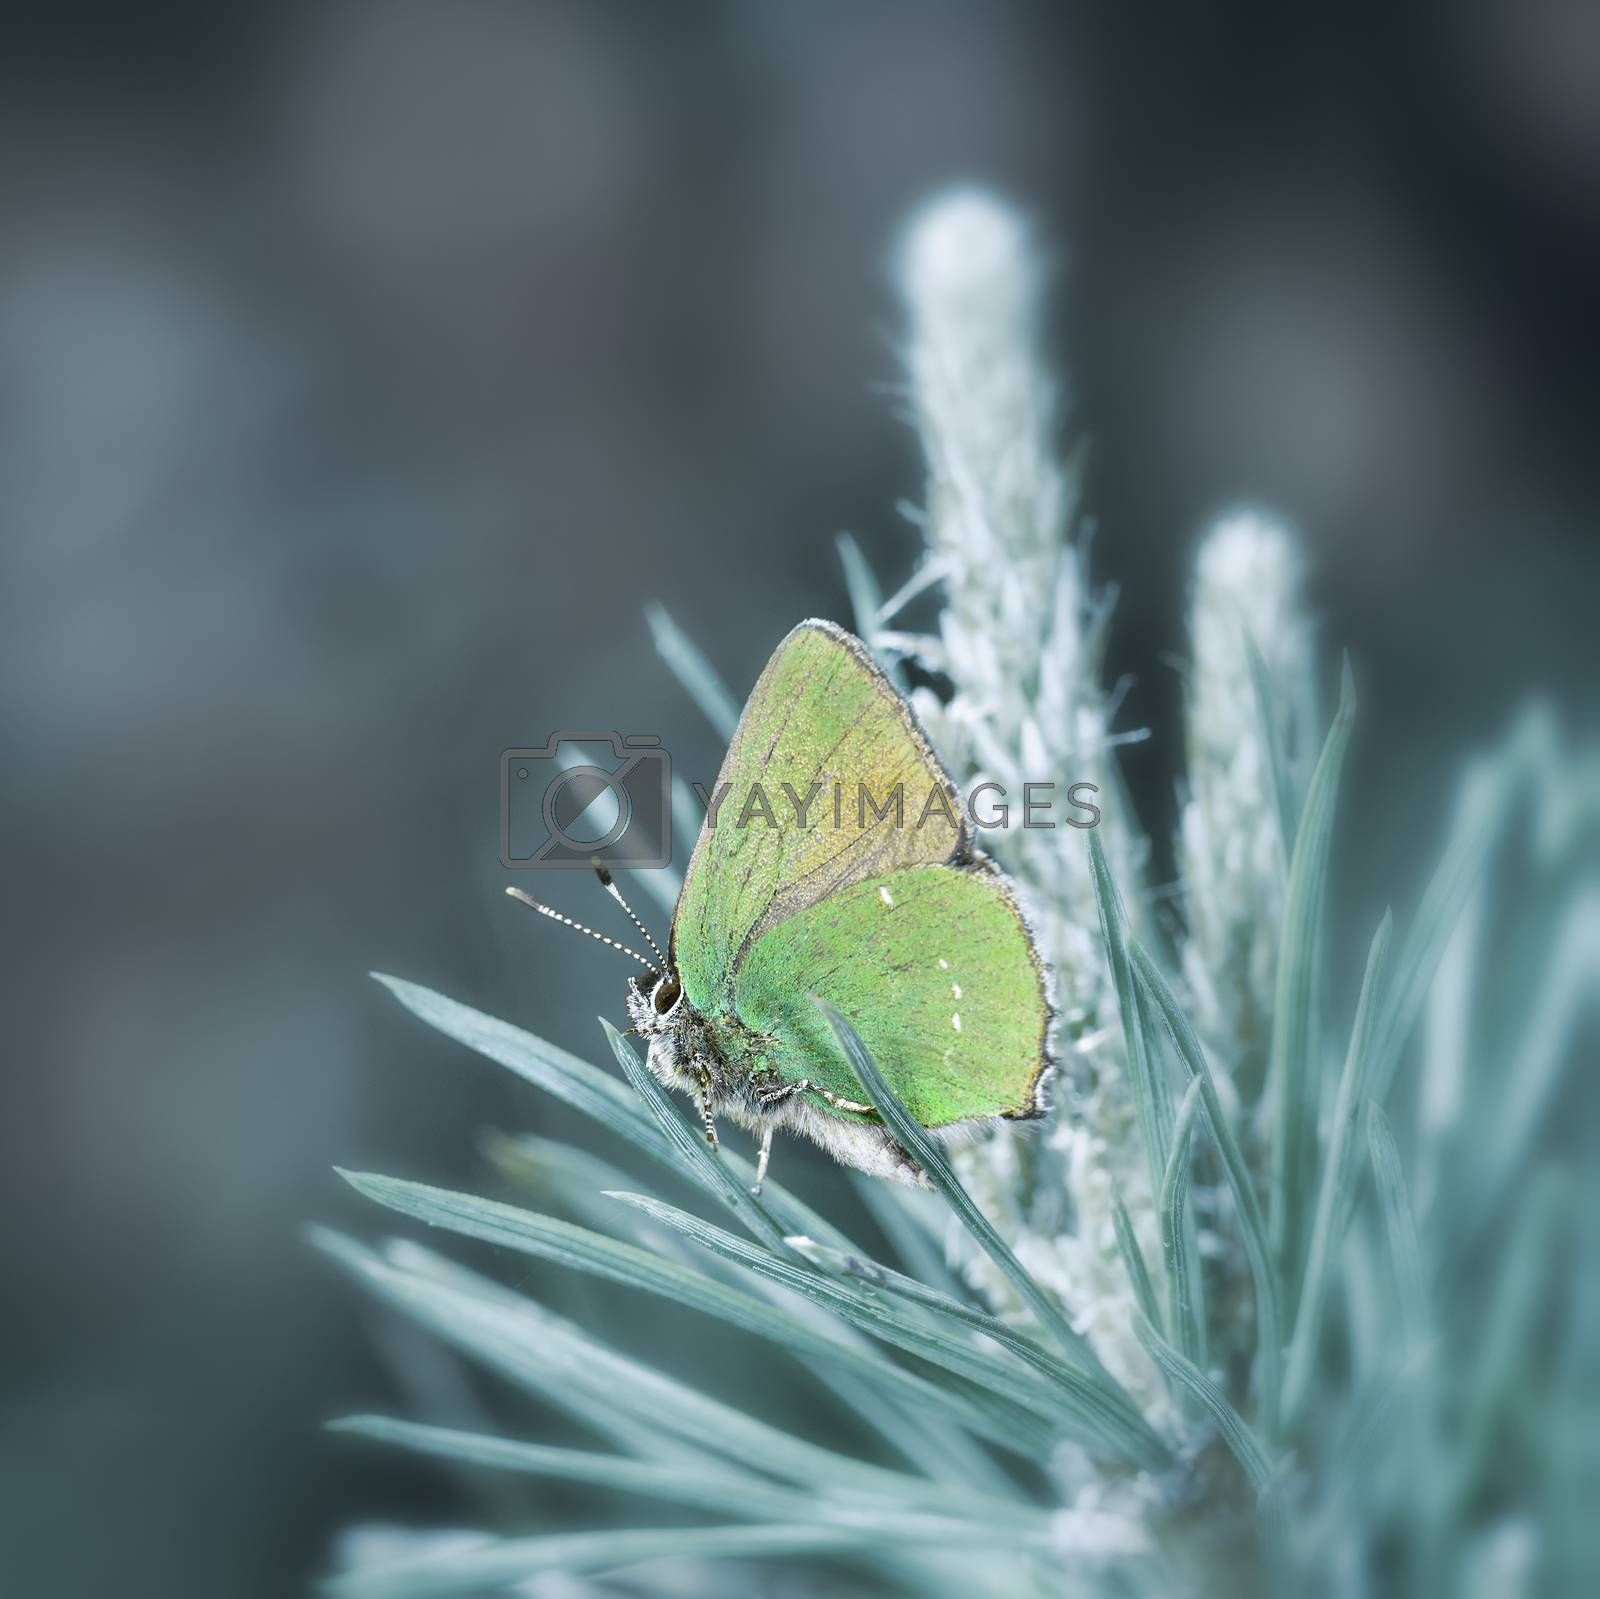 green butterfly sitting on a pine branch, close-up